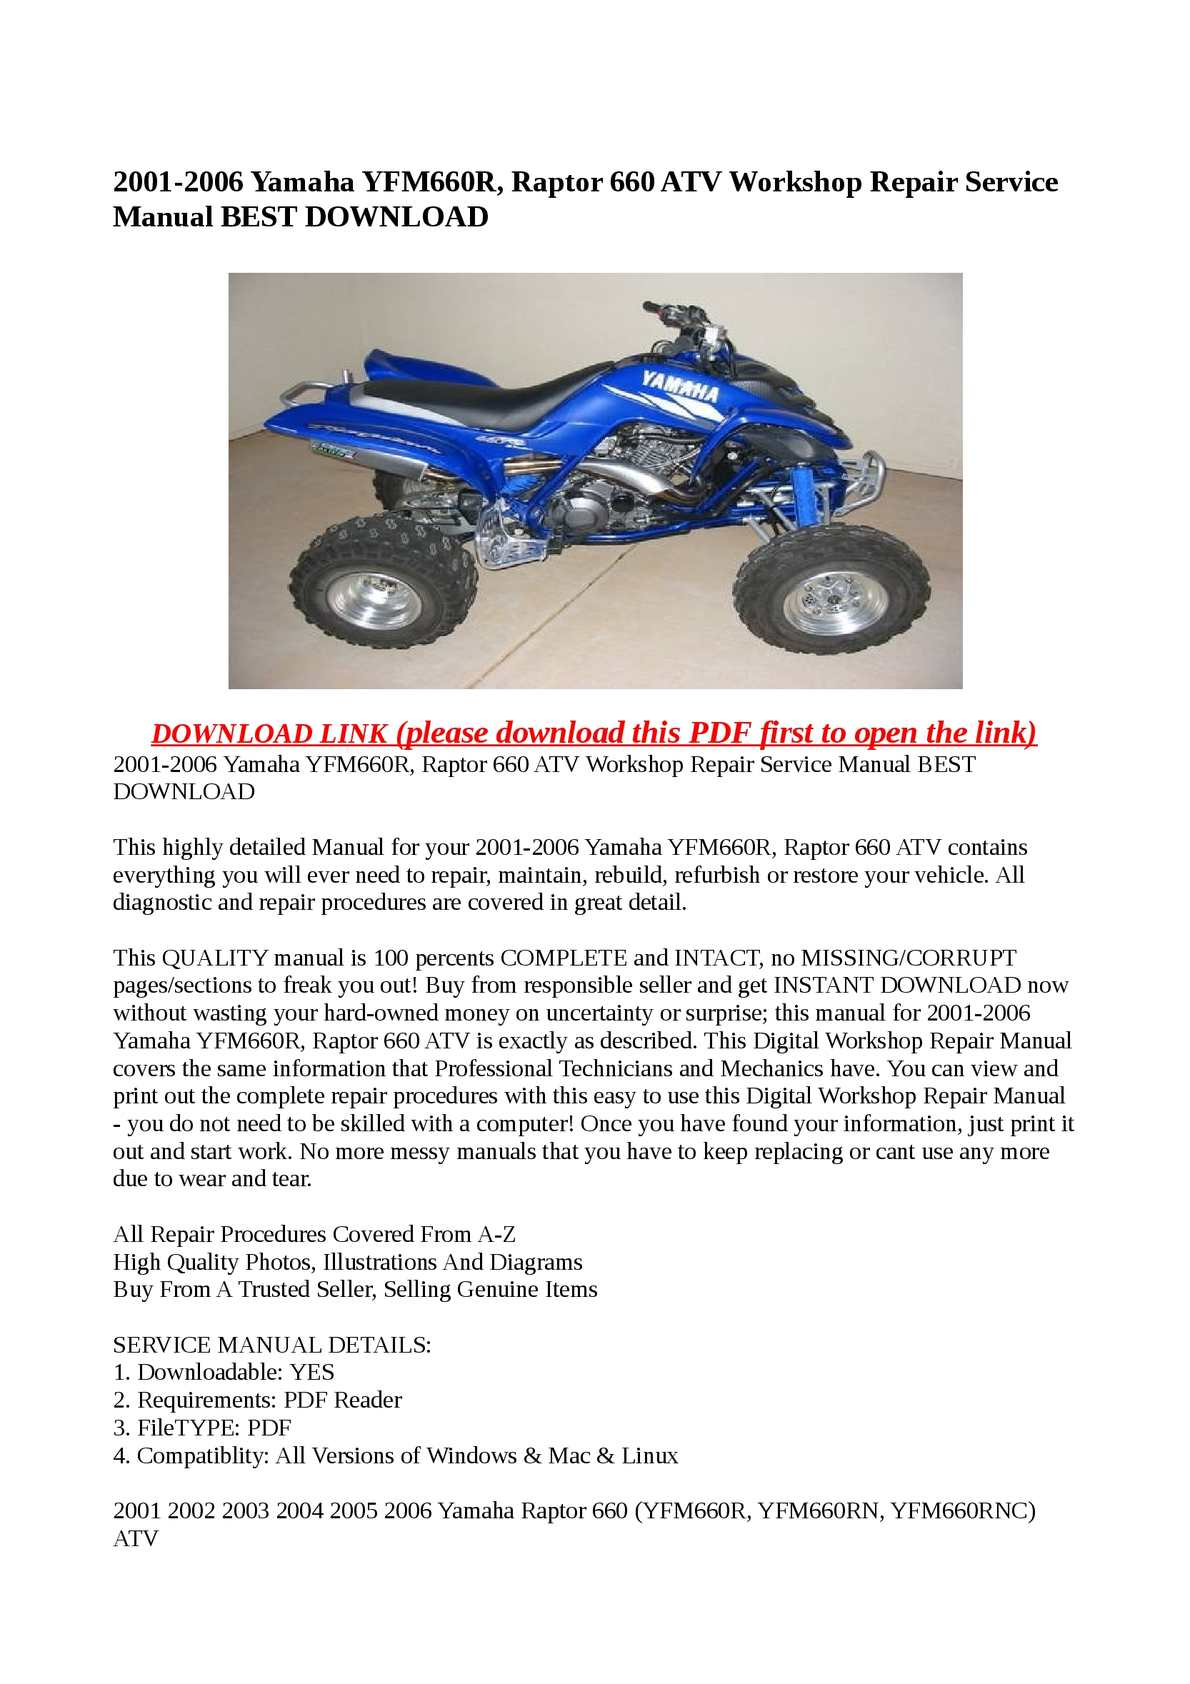 Calaméo - 2001-2006 Yamaha YFM660R, Raptor 660 ATV Workshop Repair Service  Manual BEST DOWNLOAD